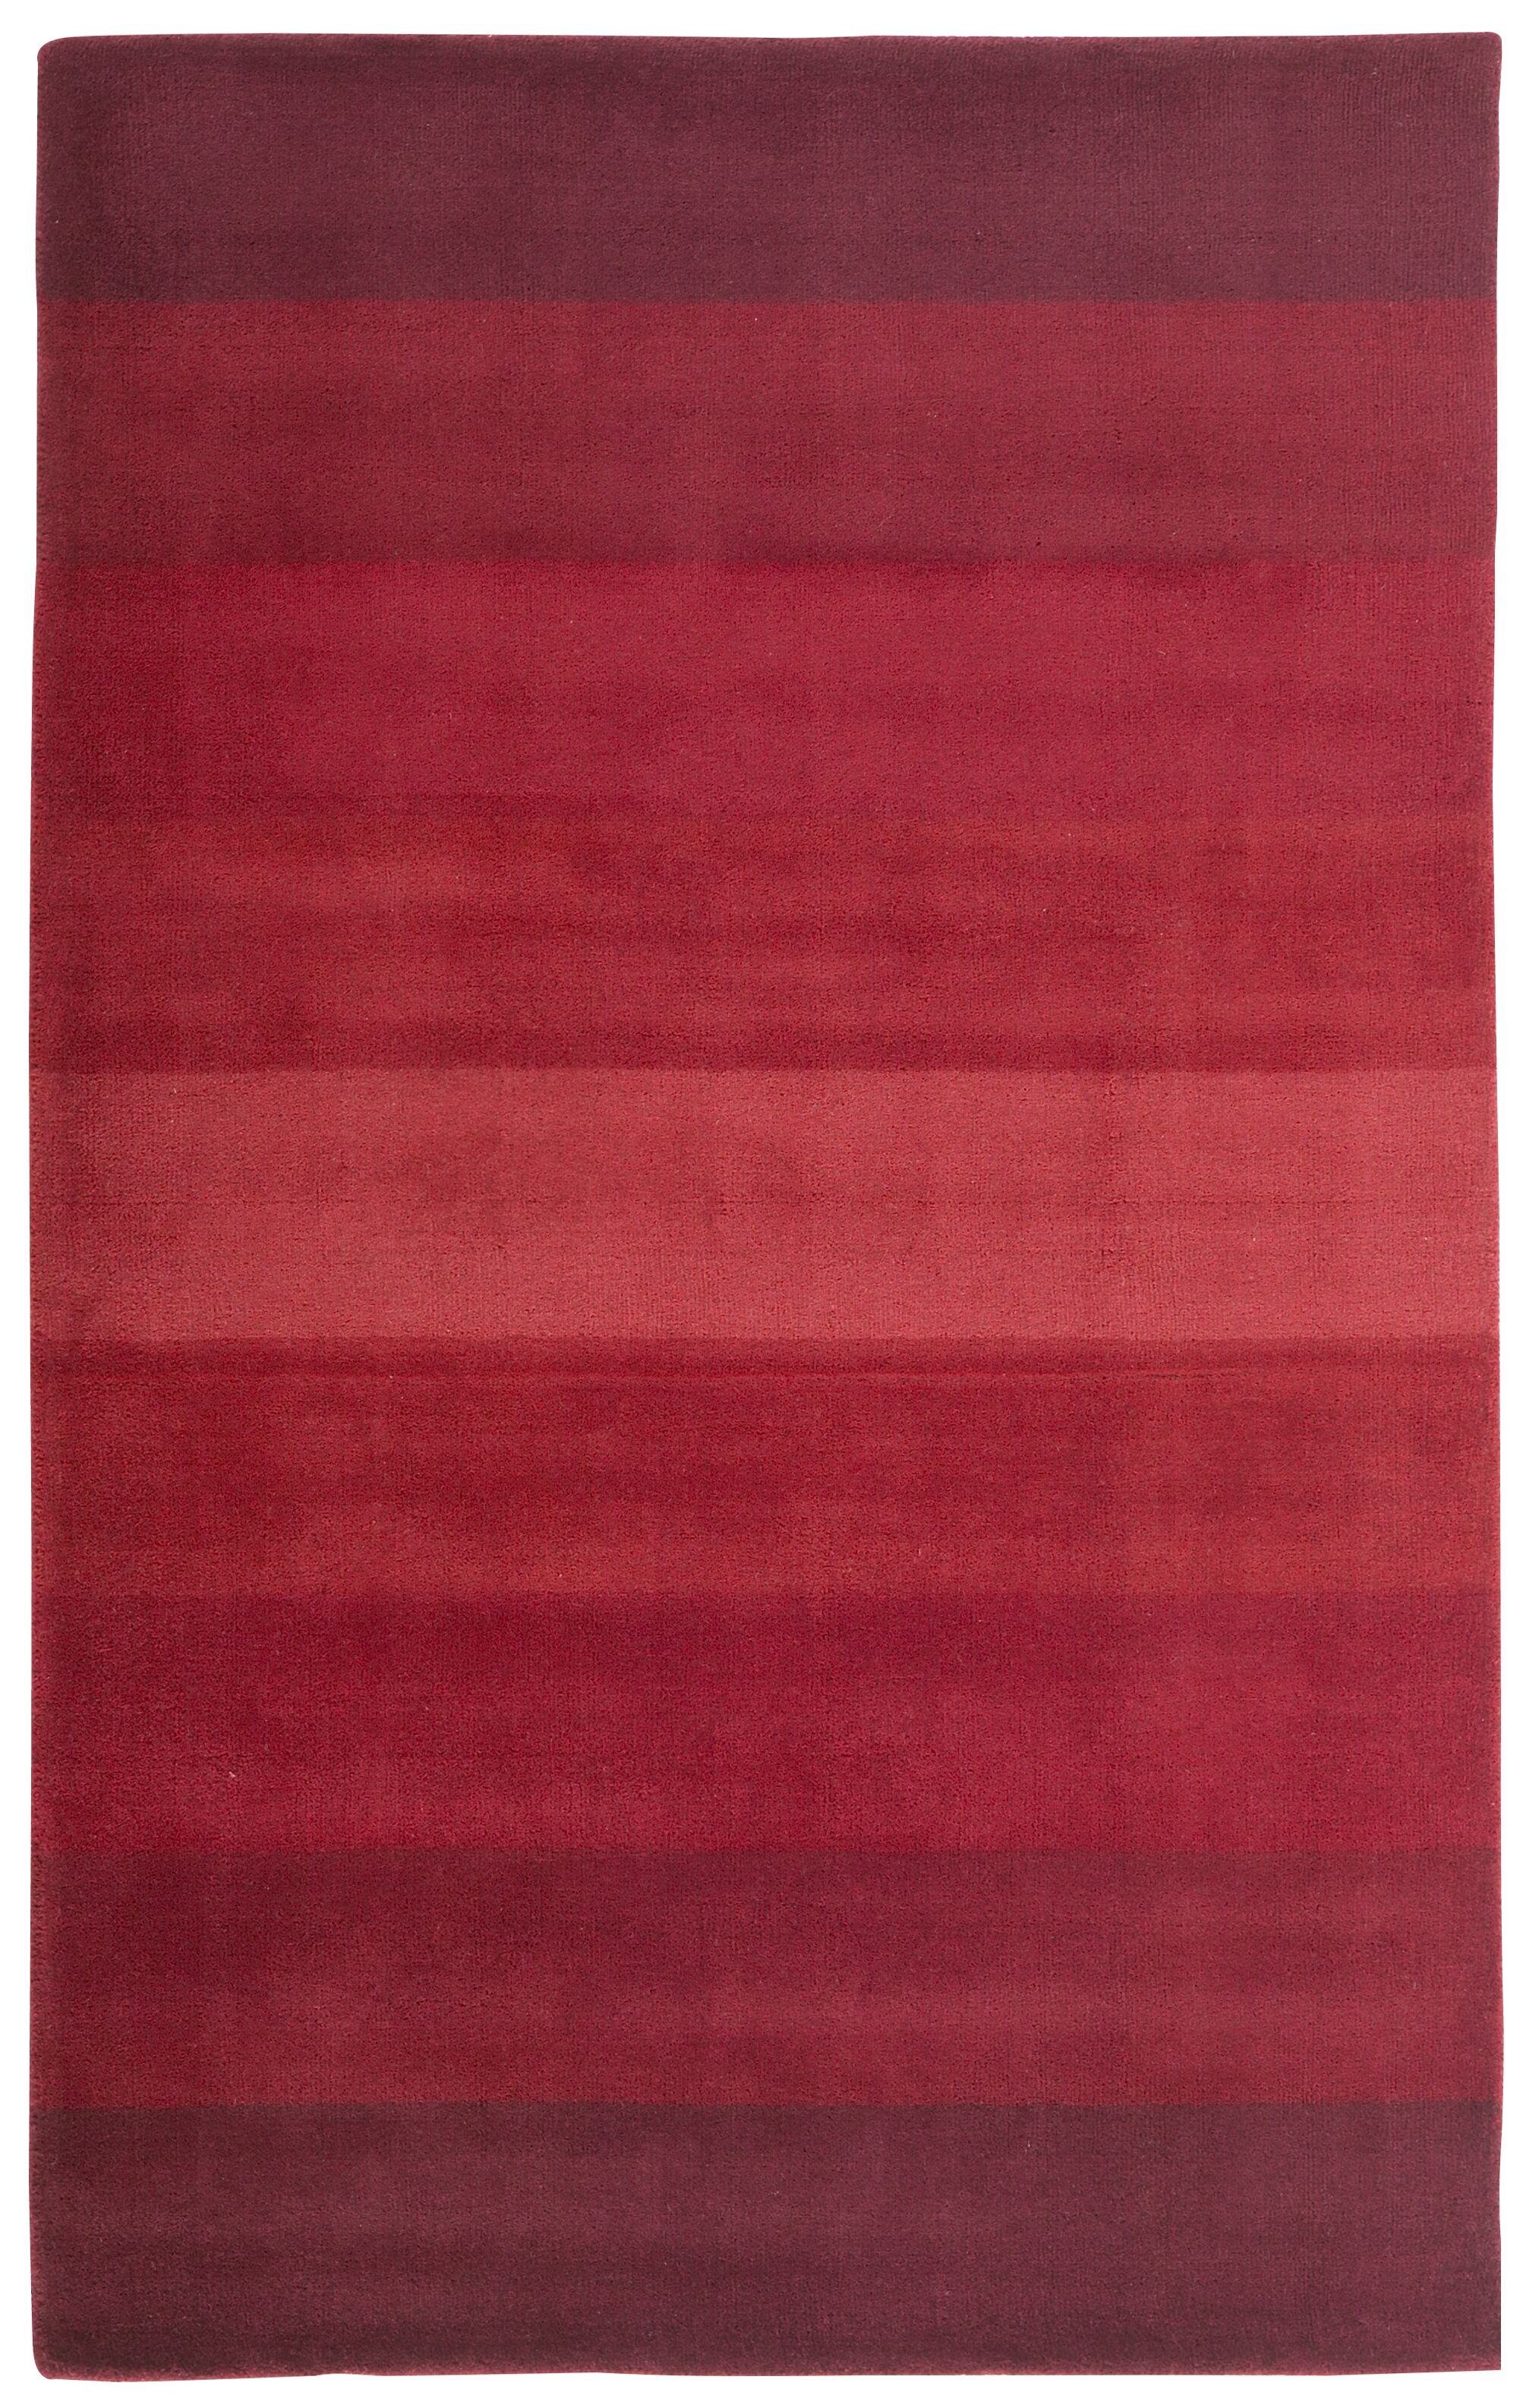 Degarmo Red Stripes Area Rug Rug Size: 4' x 6'